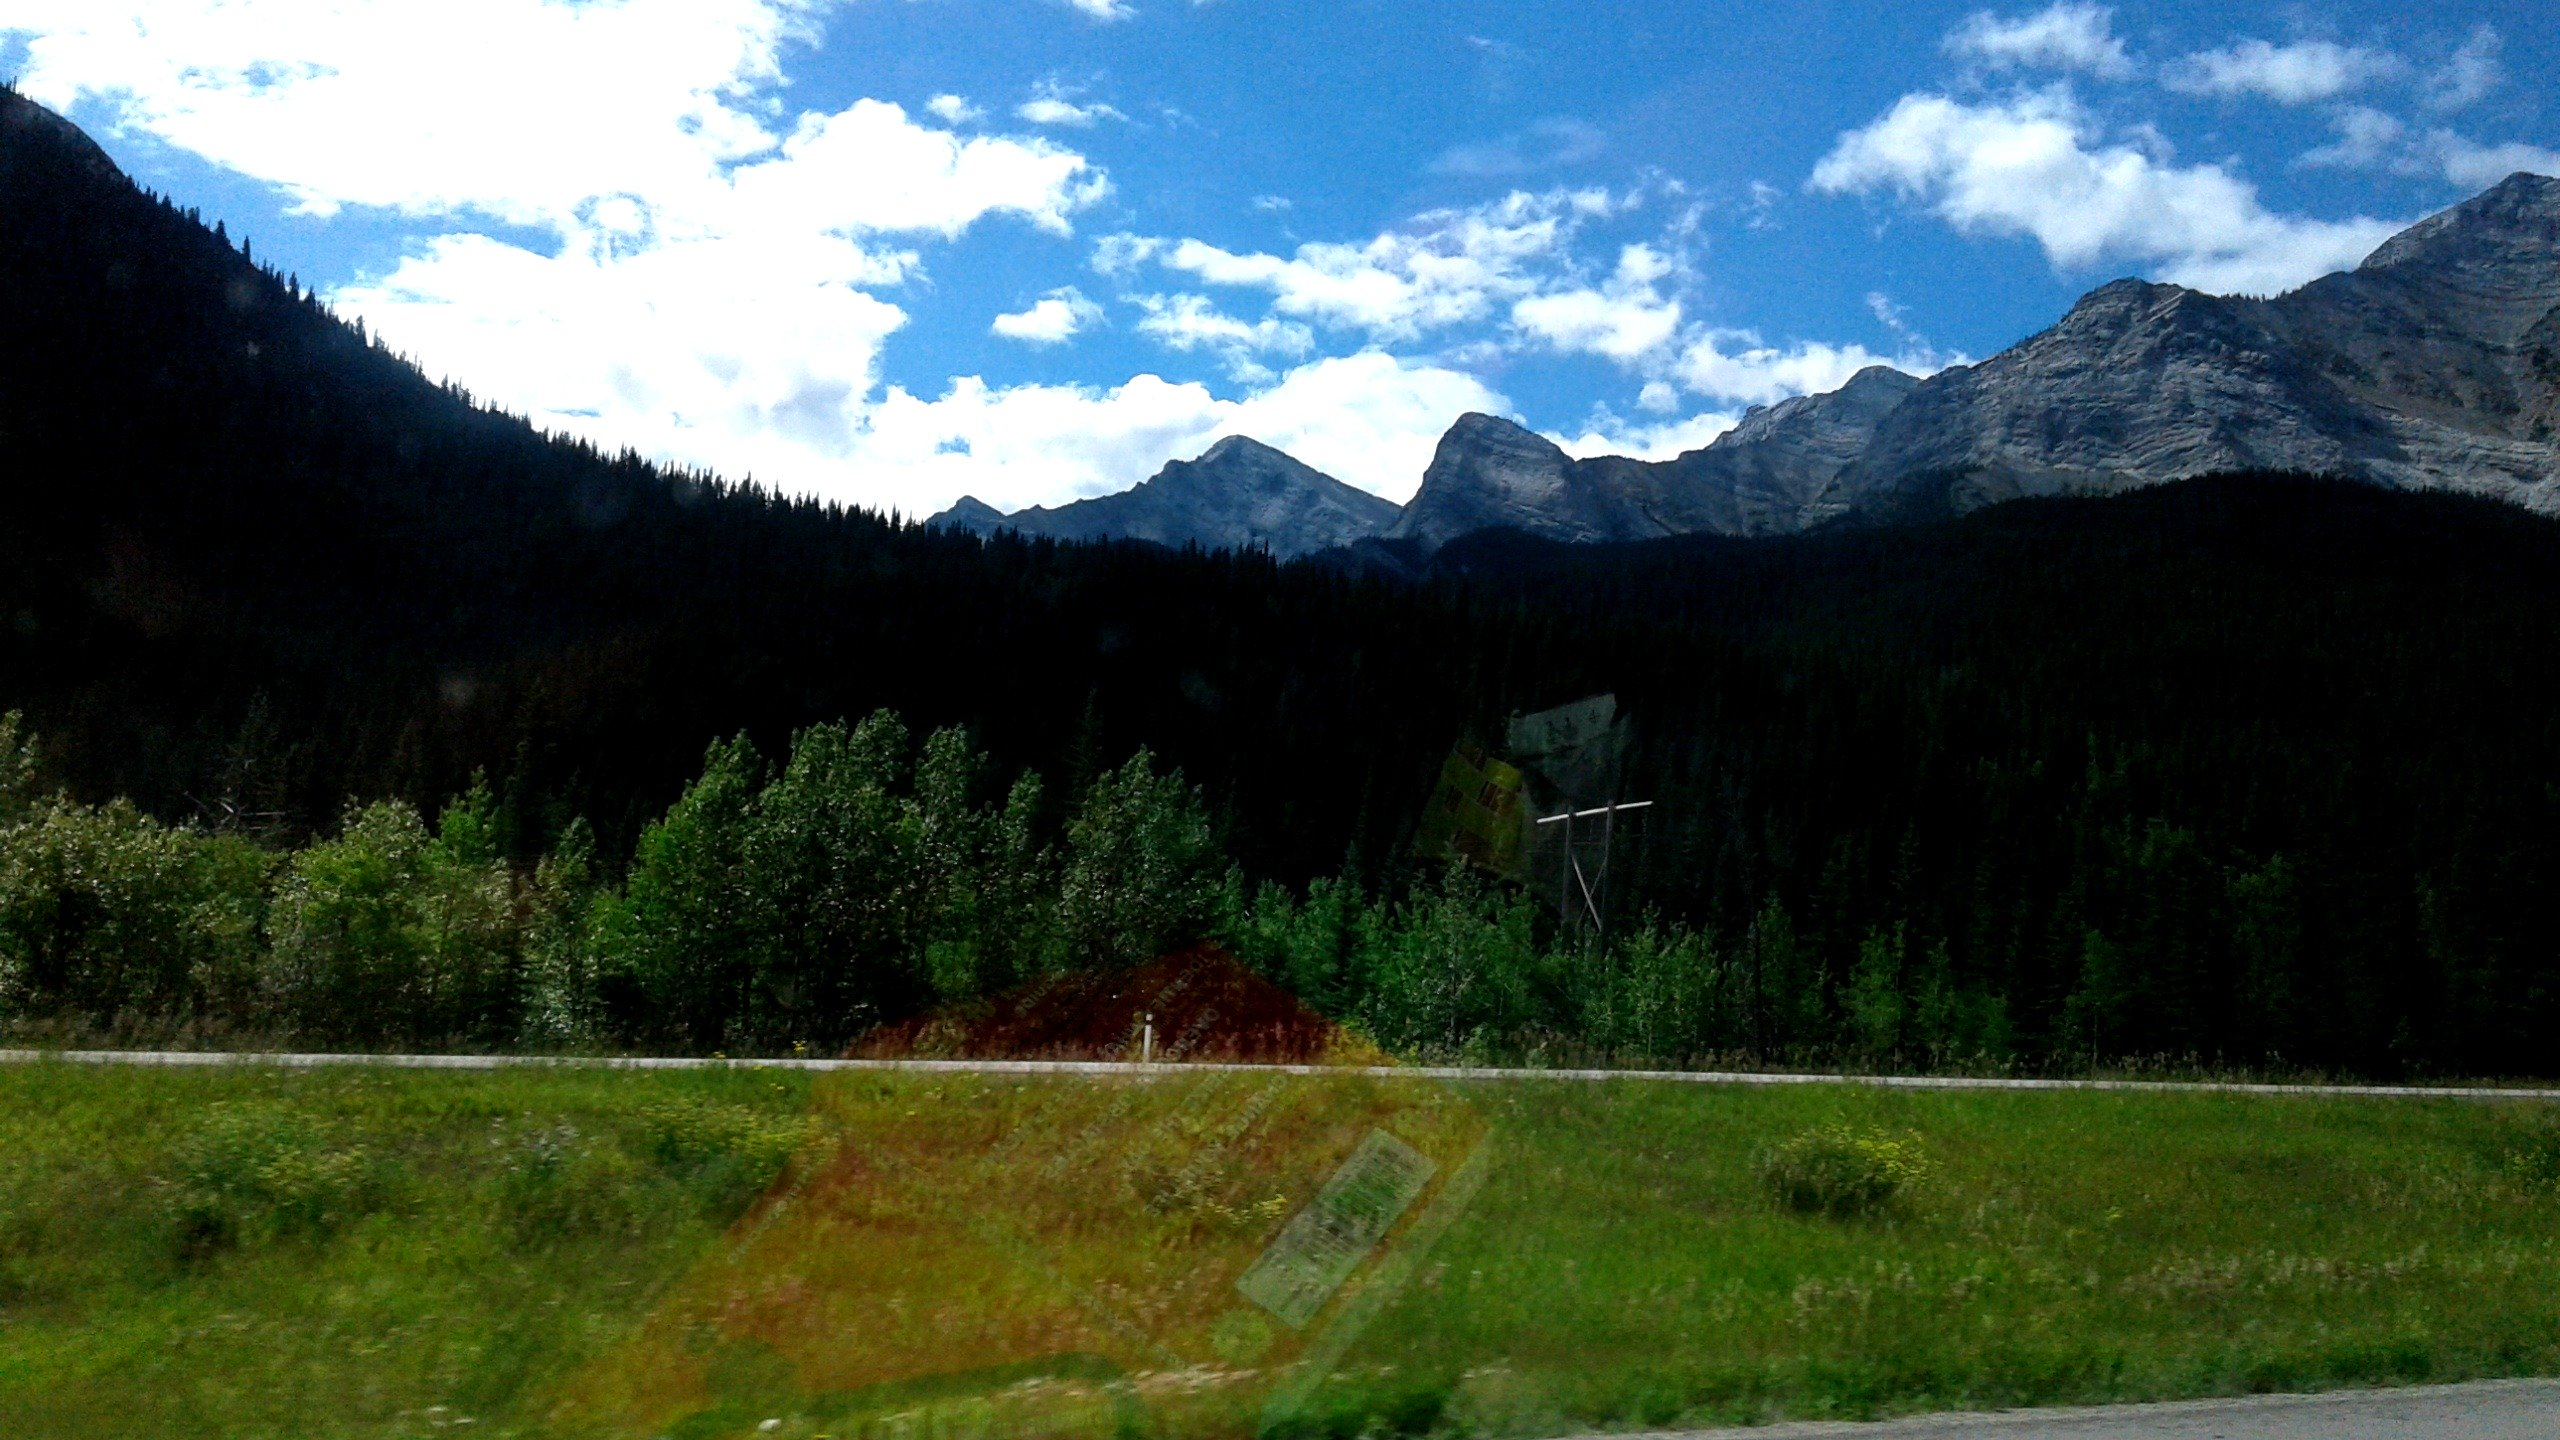 The Road Trip to Vancouver through the Rockies of British Columbia